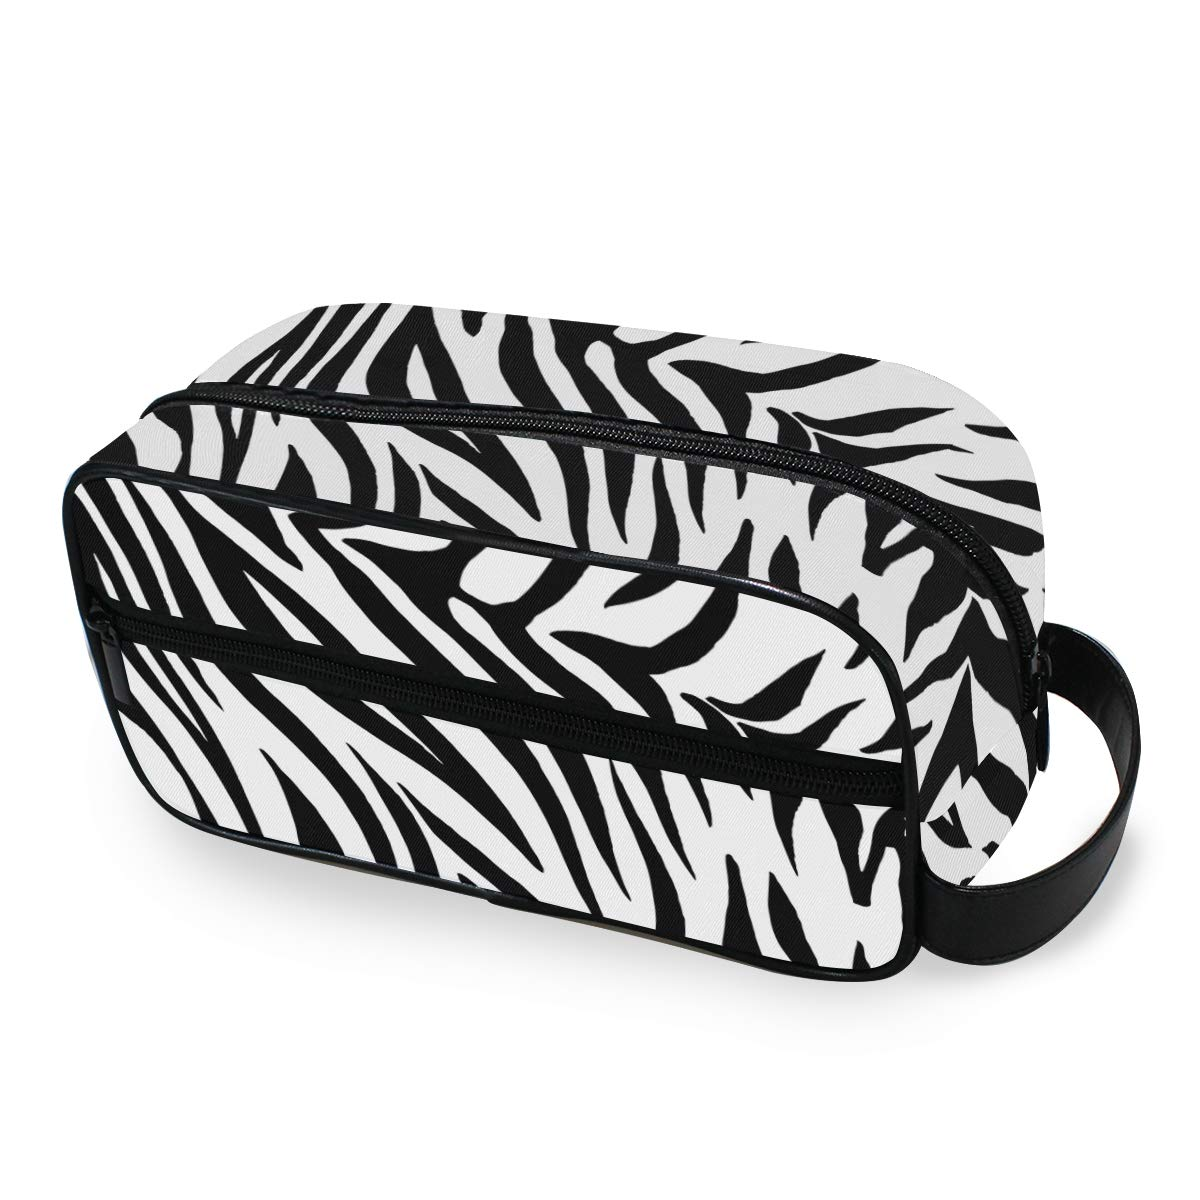 JOYPRINT Portable Travel Makeup Bag, Zebra Animal Print Pattern Cosmetic Bag Toiletry Bag Pouch with Zipper Multifunction Cosmetic Case for Women Girls